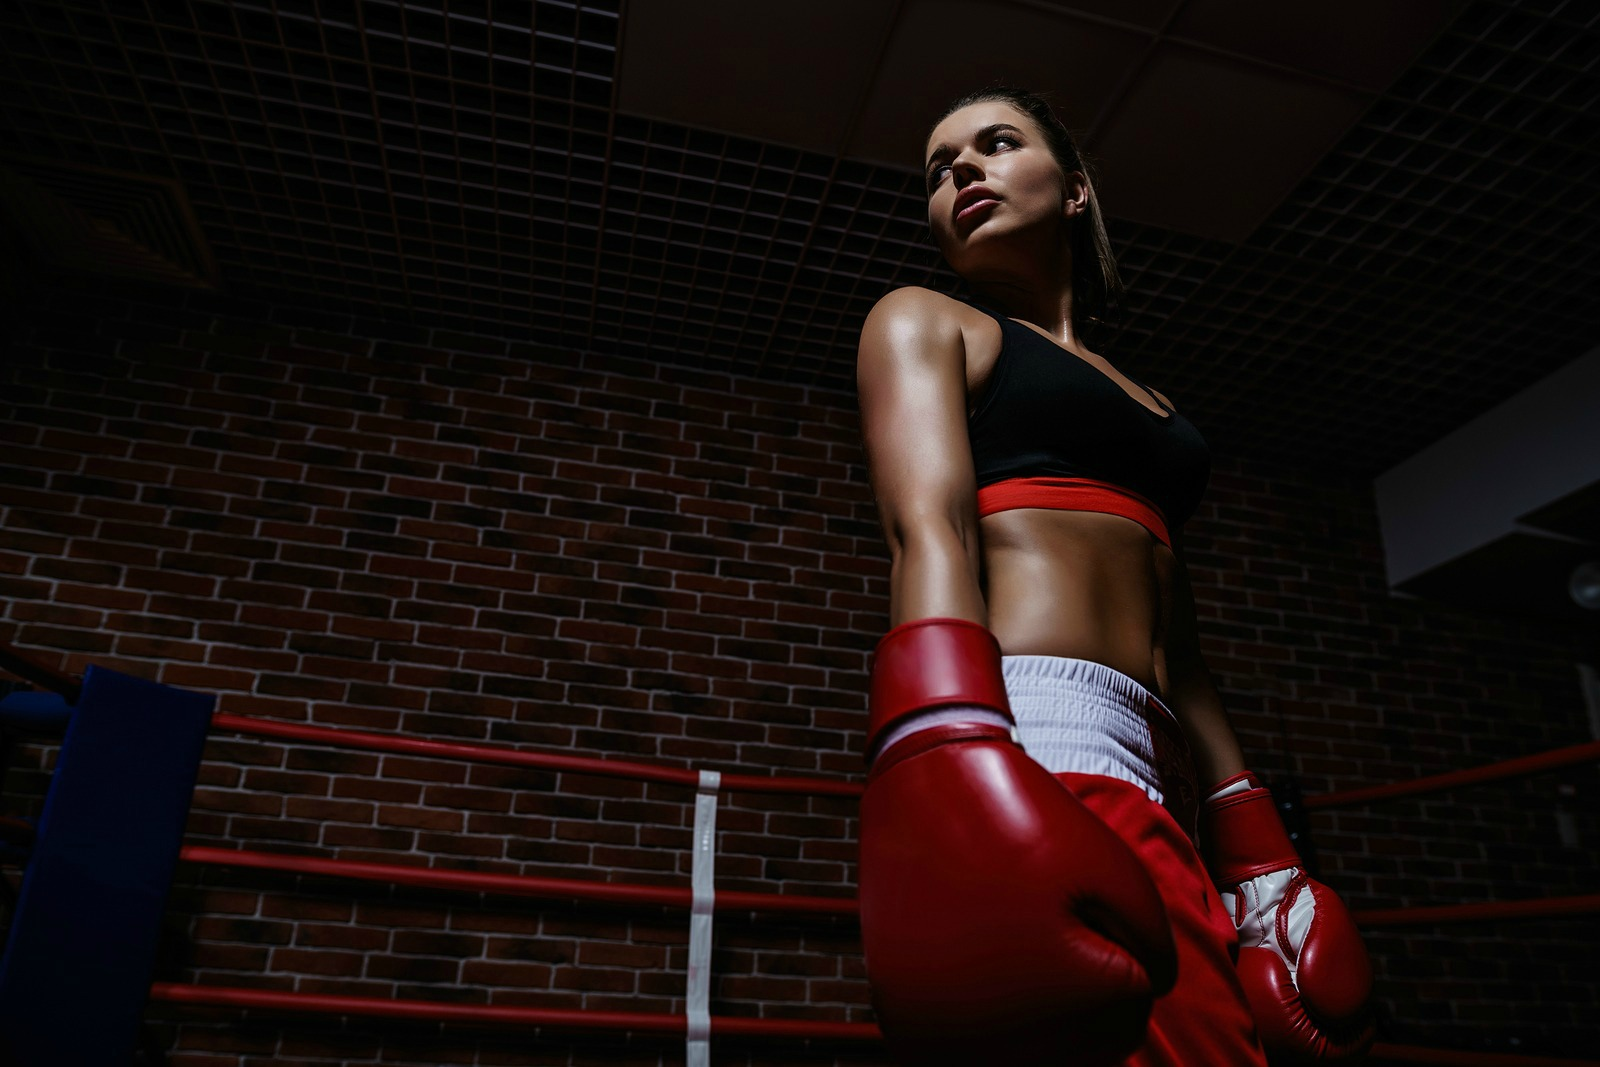 Step into the boxing ring and let our your aggression - with benefits for your body and mind